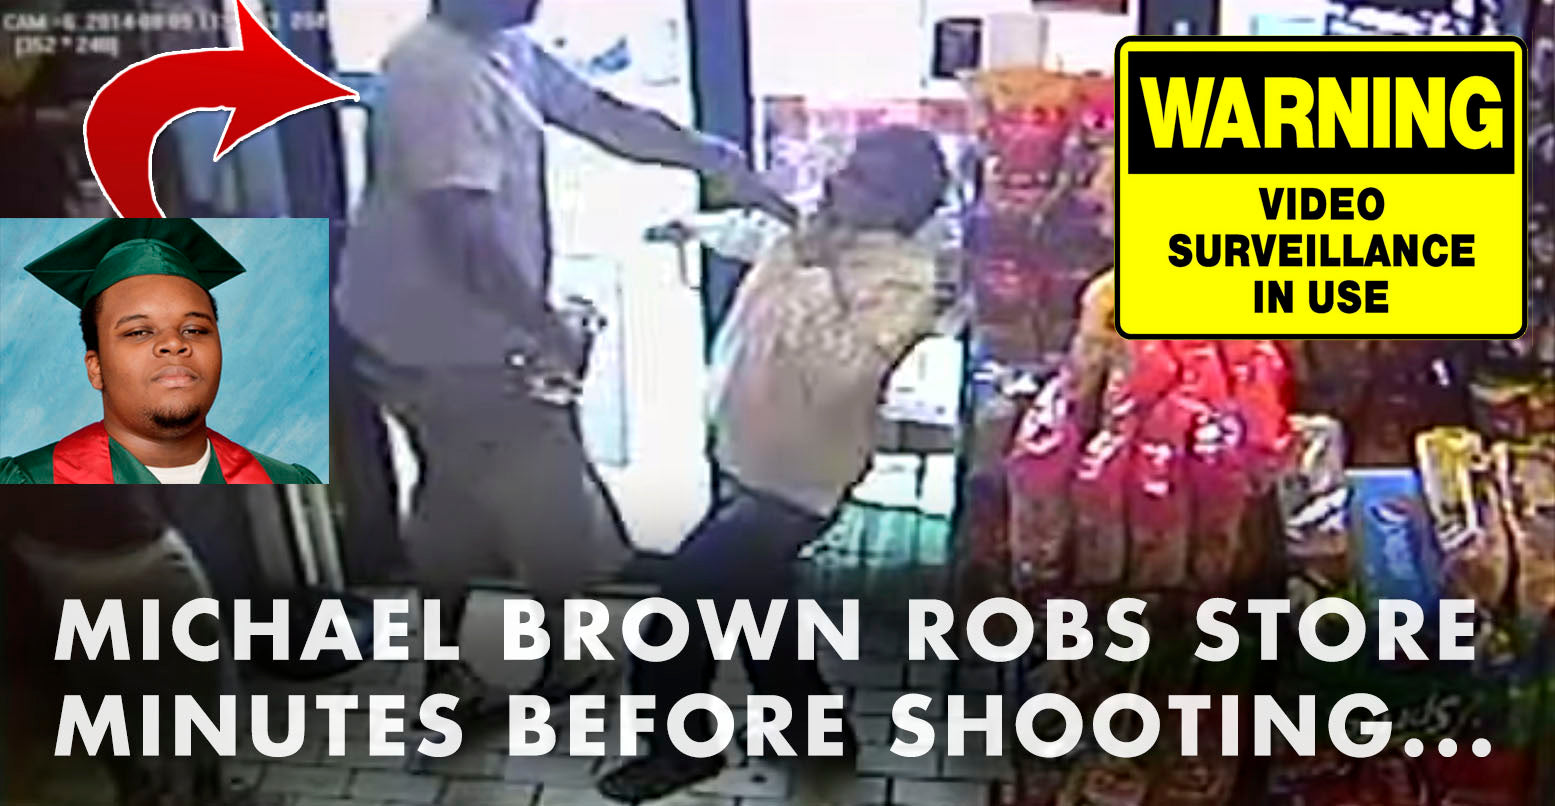 Surveillance VIDEO: Michael Brown Robs Store Minutes Before Shooting